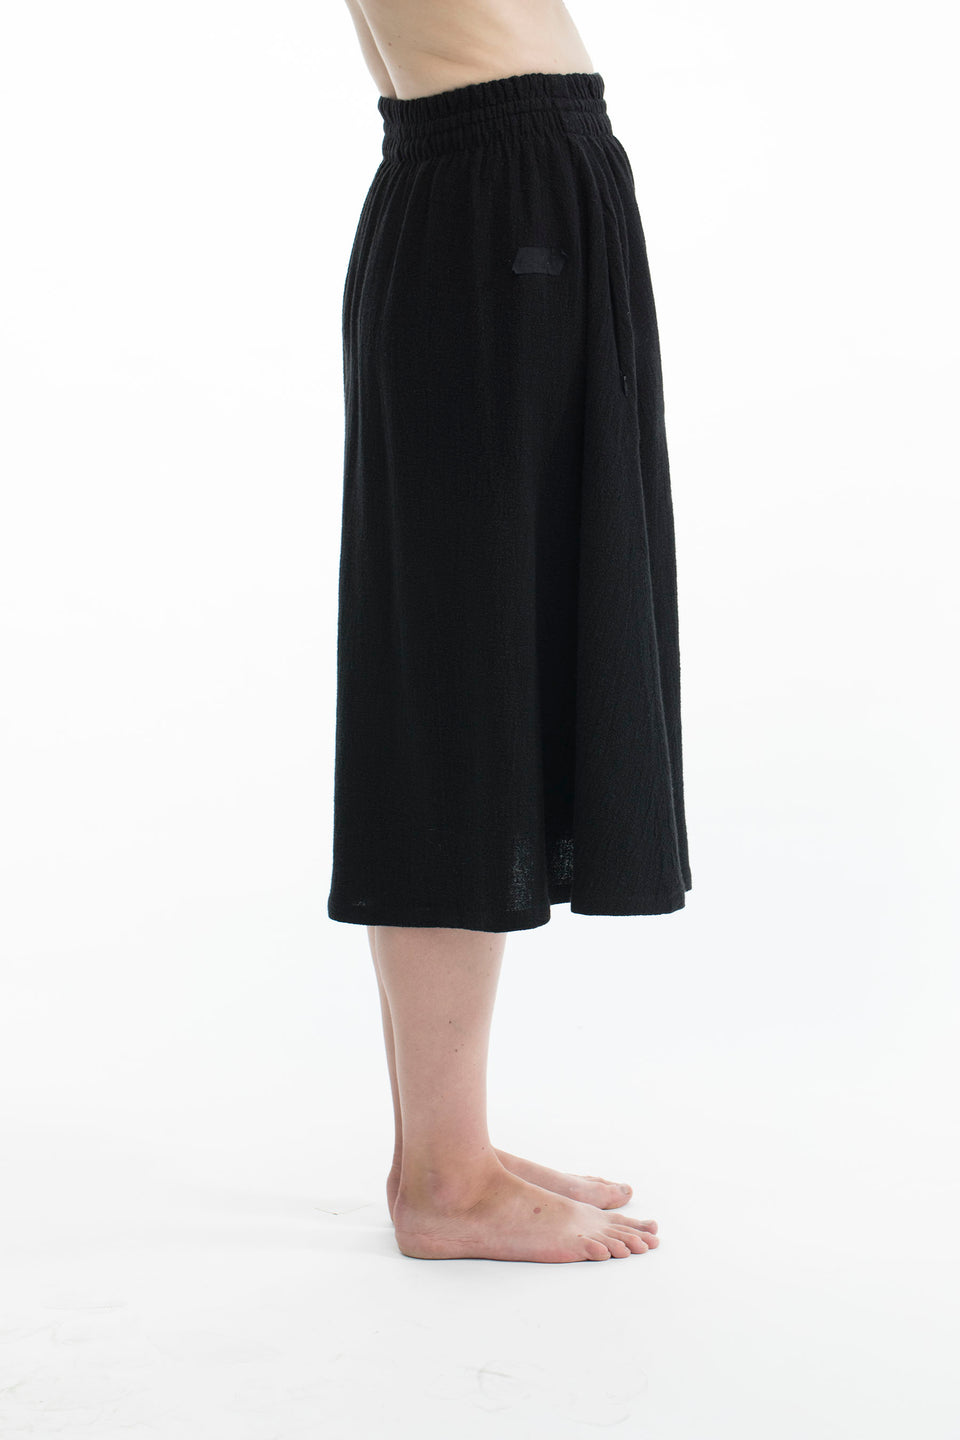 RAW Women Comfort Skirt Black